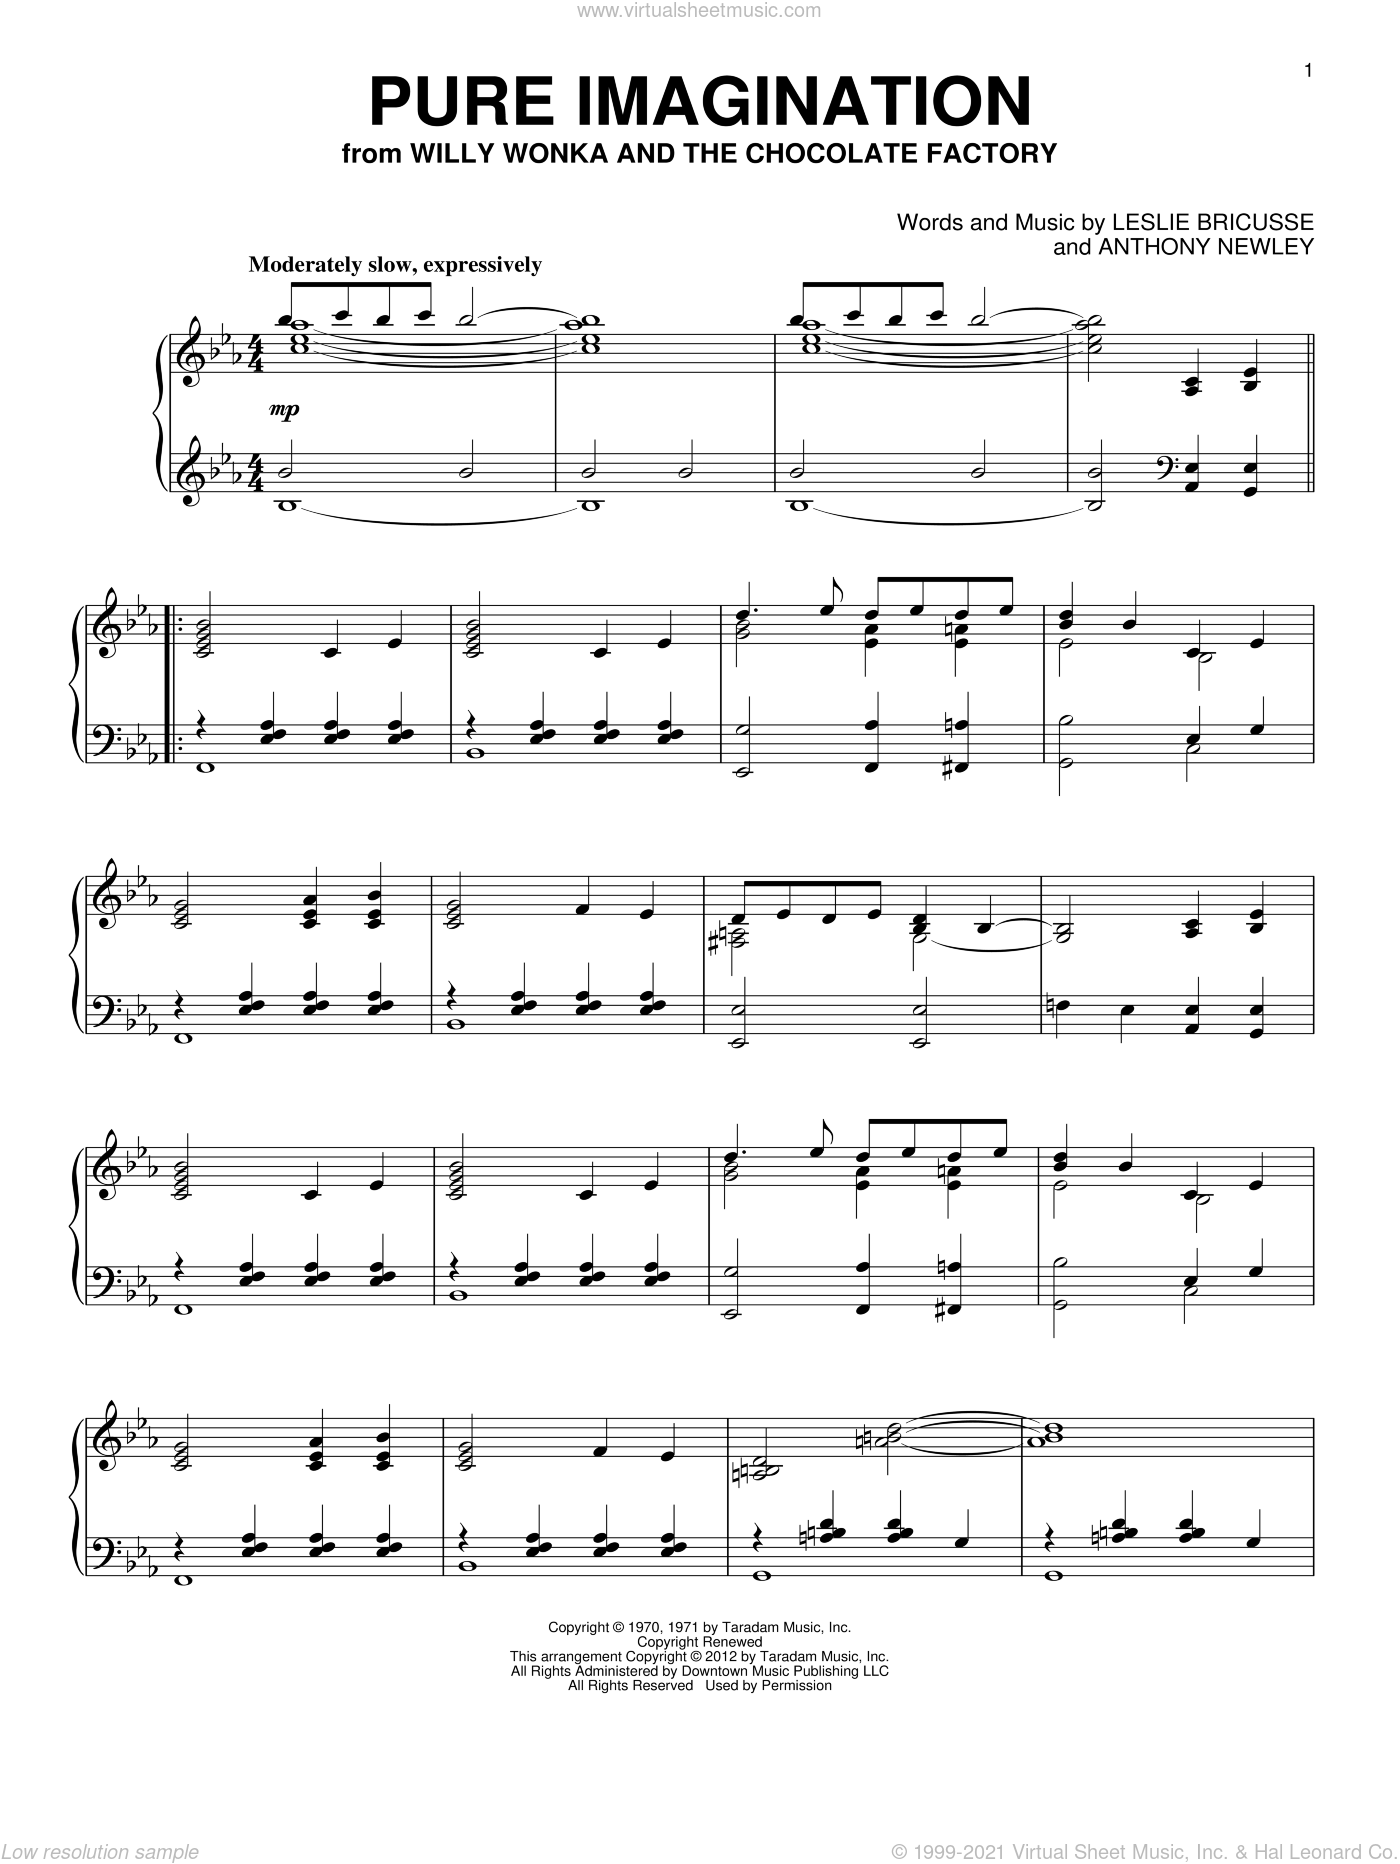 Pure Imagination sheet music for piano solo by Willy Wonka & the Chocolate Factory, Anthony Newley and Leslie Bricusse, intermediate piano. Score Image Preview.